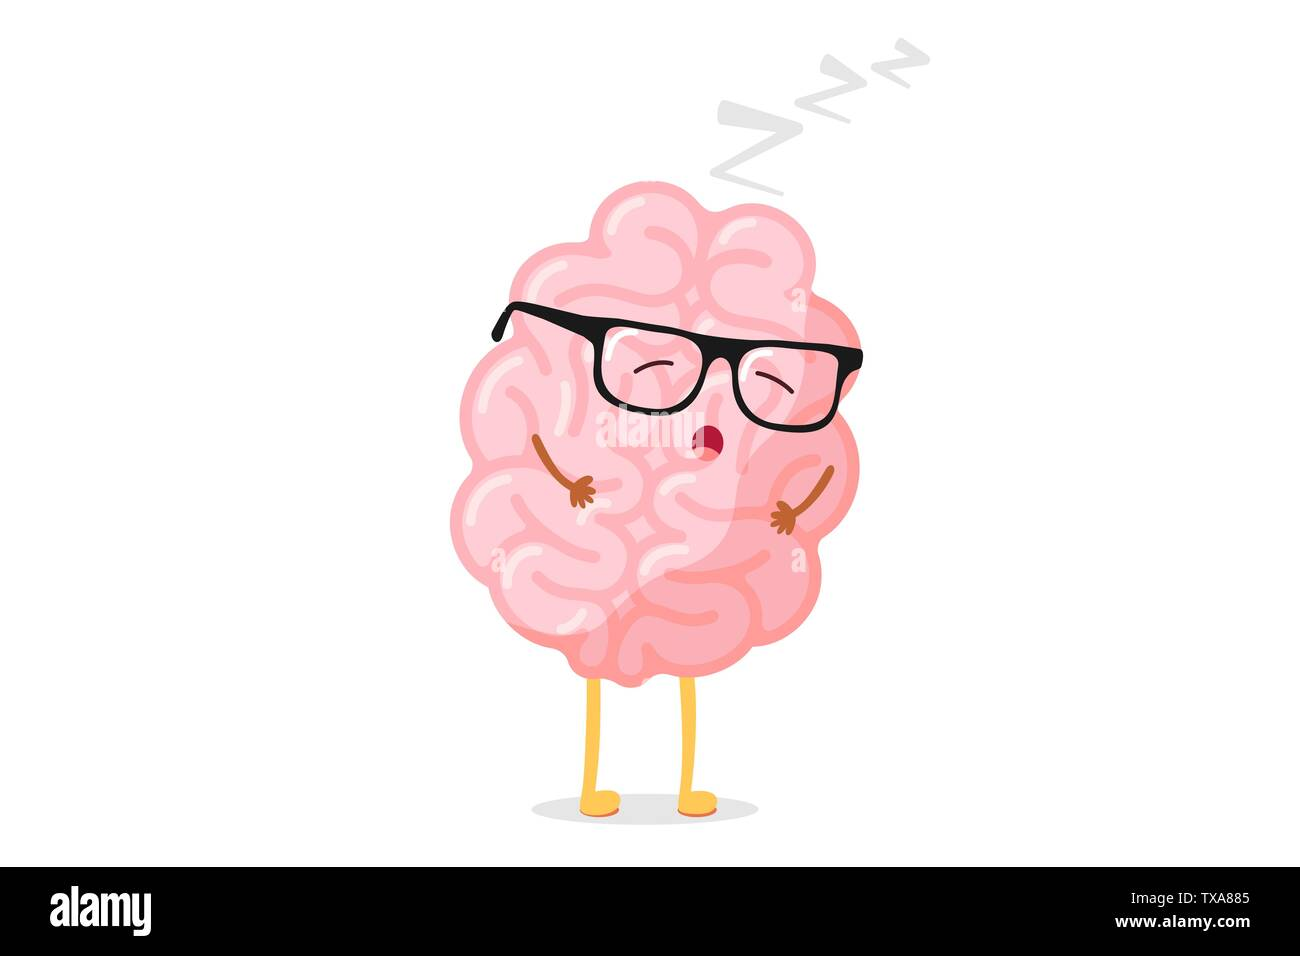 Cute cartoon smart human brain with glasses relaxation. Central nervous system sleeping organ funny vector illustration - Stock Image